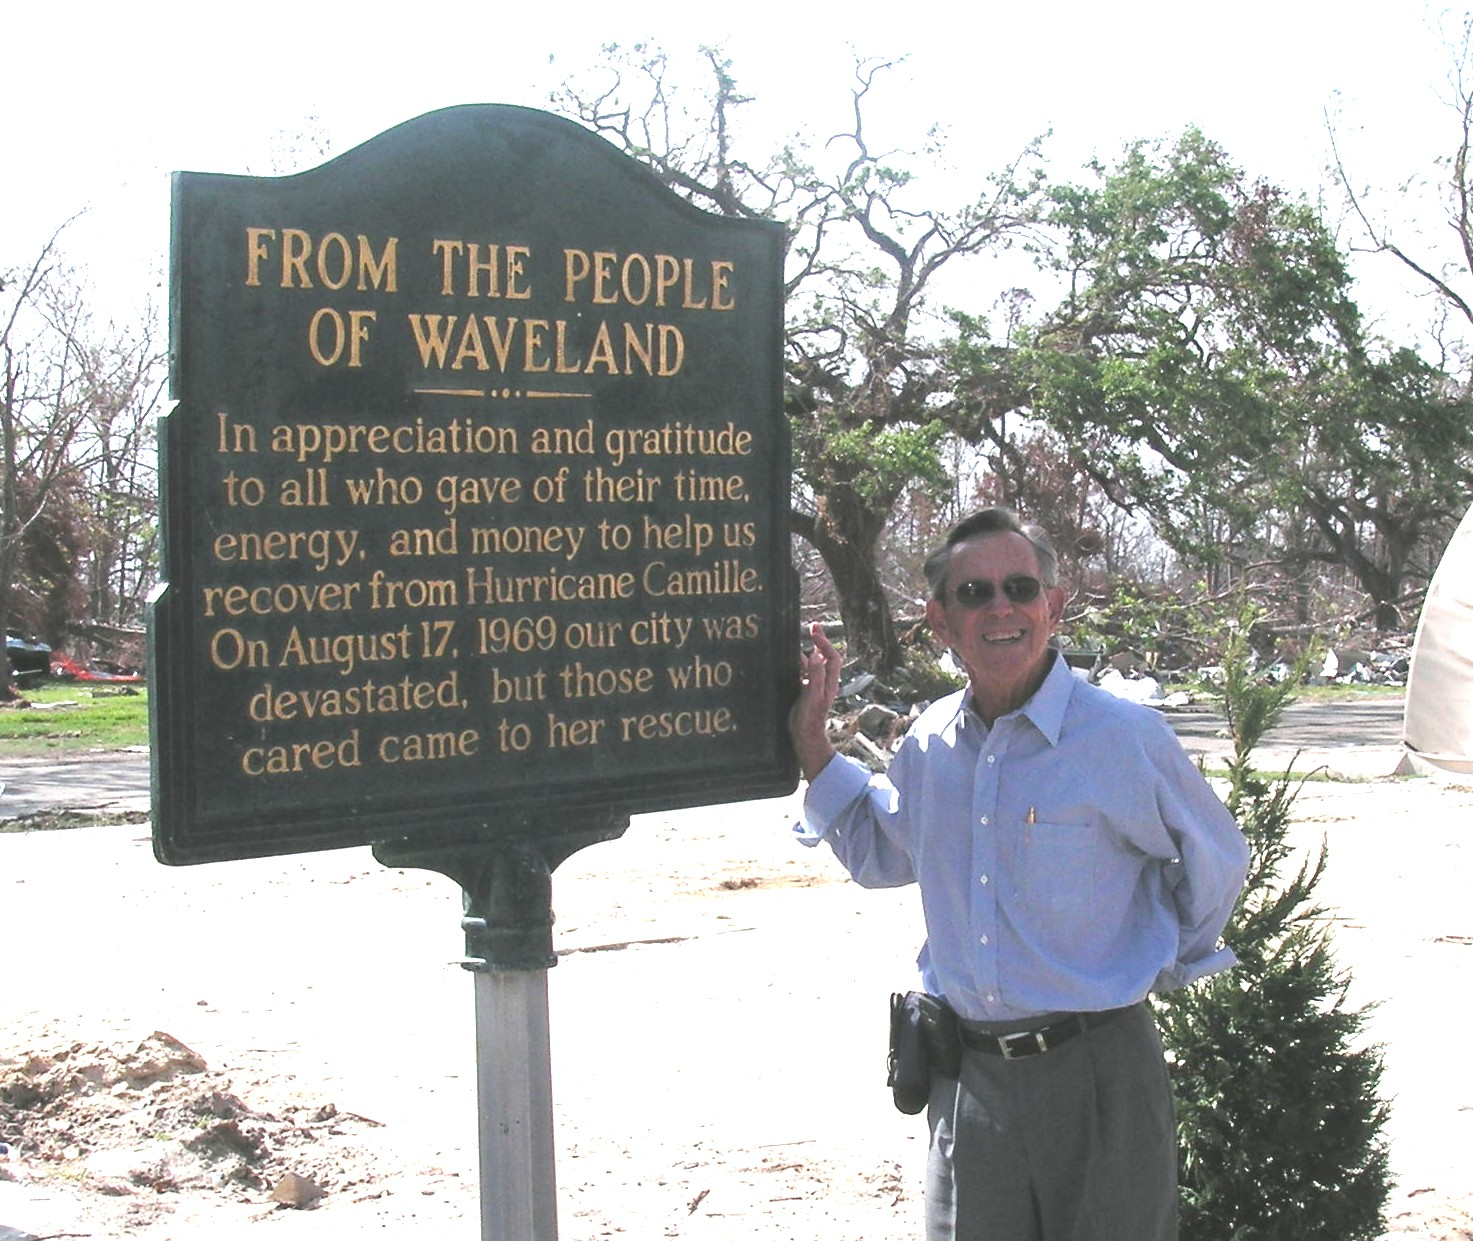 15. Norris Little poses next to a marker thanking volunteers and donors for helping the Waveland community rebuild after the Hurricane Camille disaster in 1969.